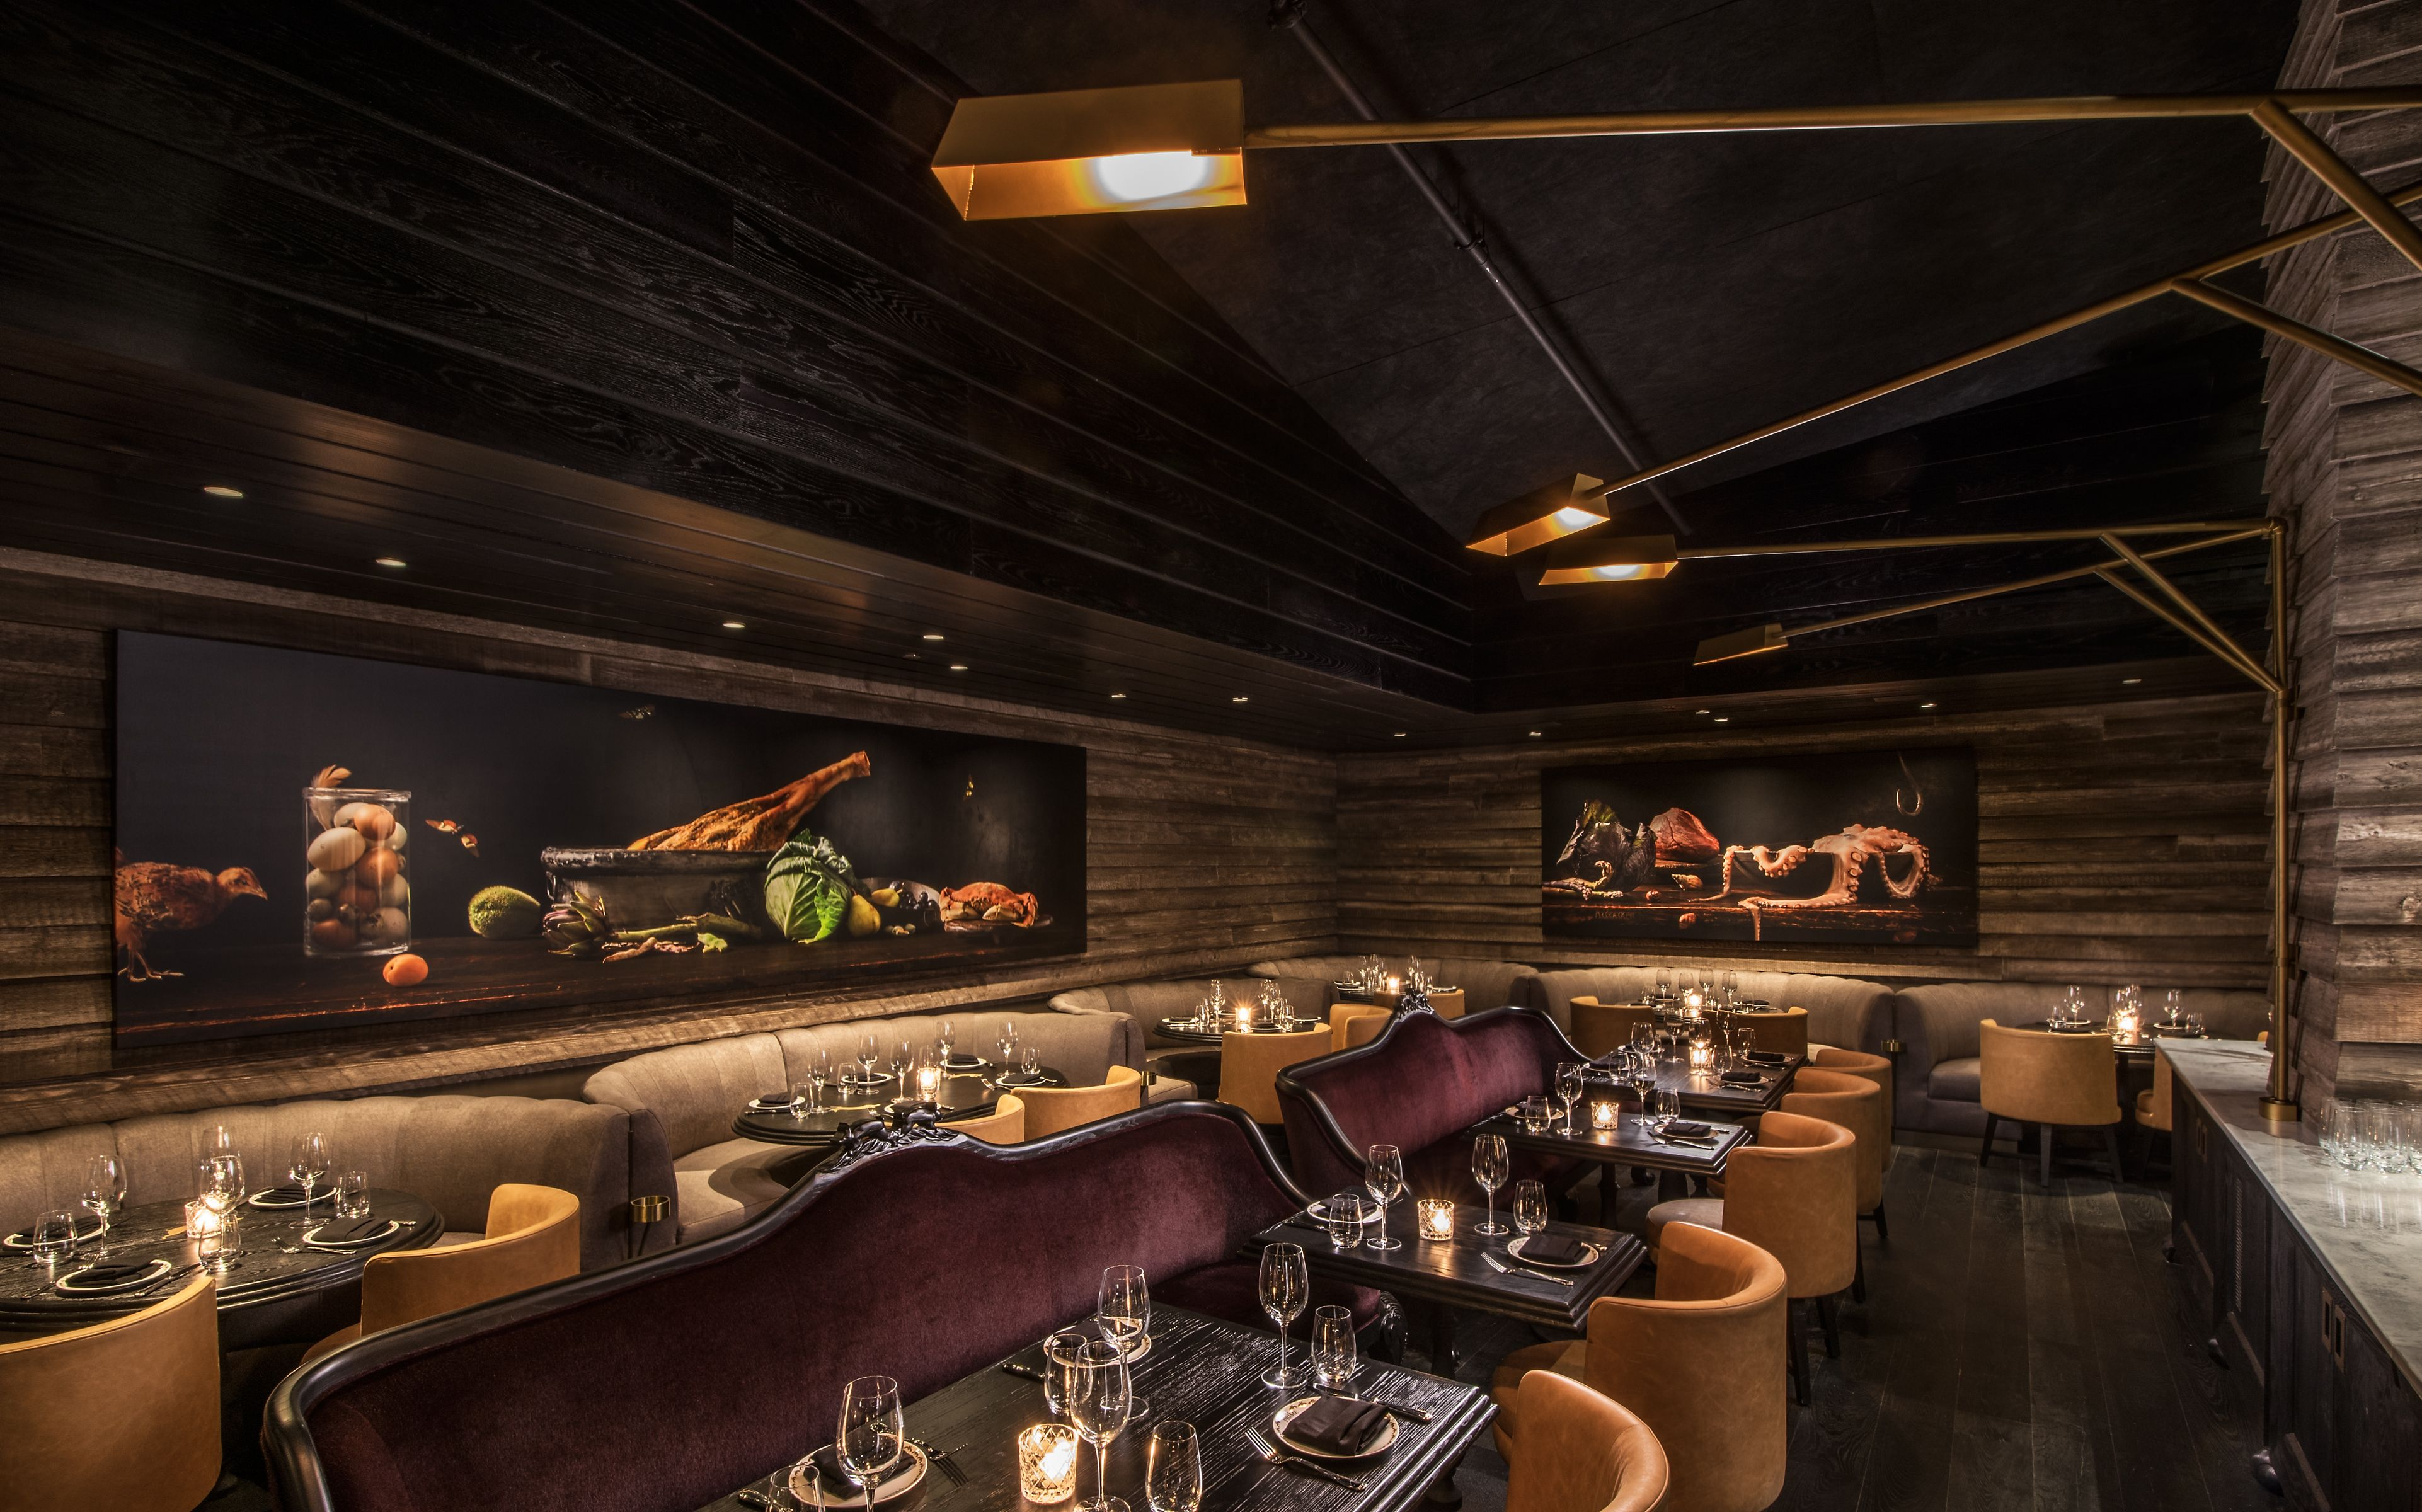 Tour Gt Prime Giuseppe Tentori S Spin On A Chicago Steakhouse Now Open Eater Chicagoclockmenumore Arrow Six Years Later And Boka The